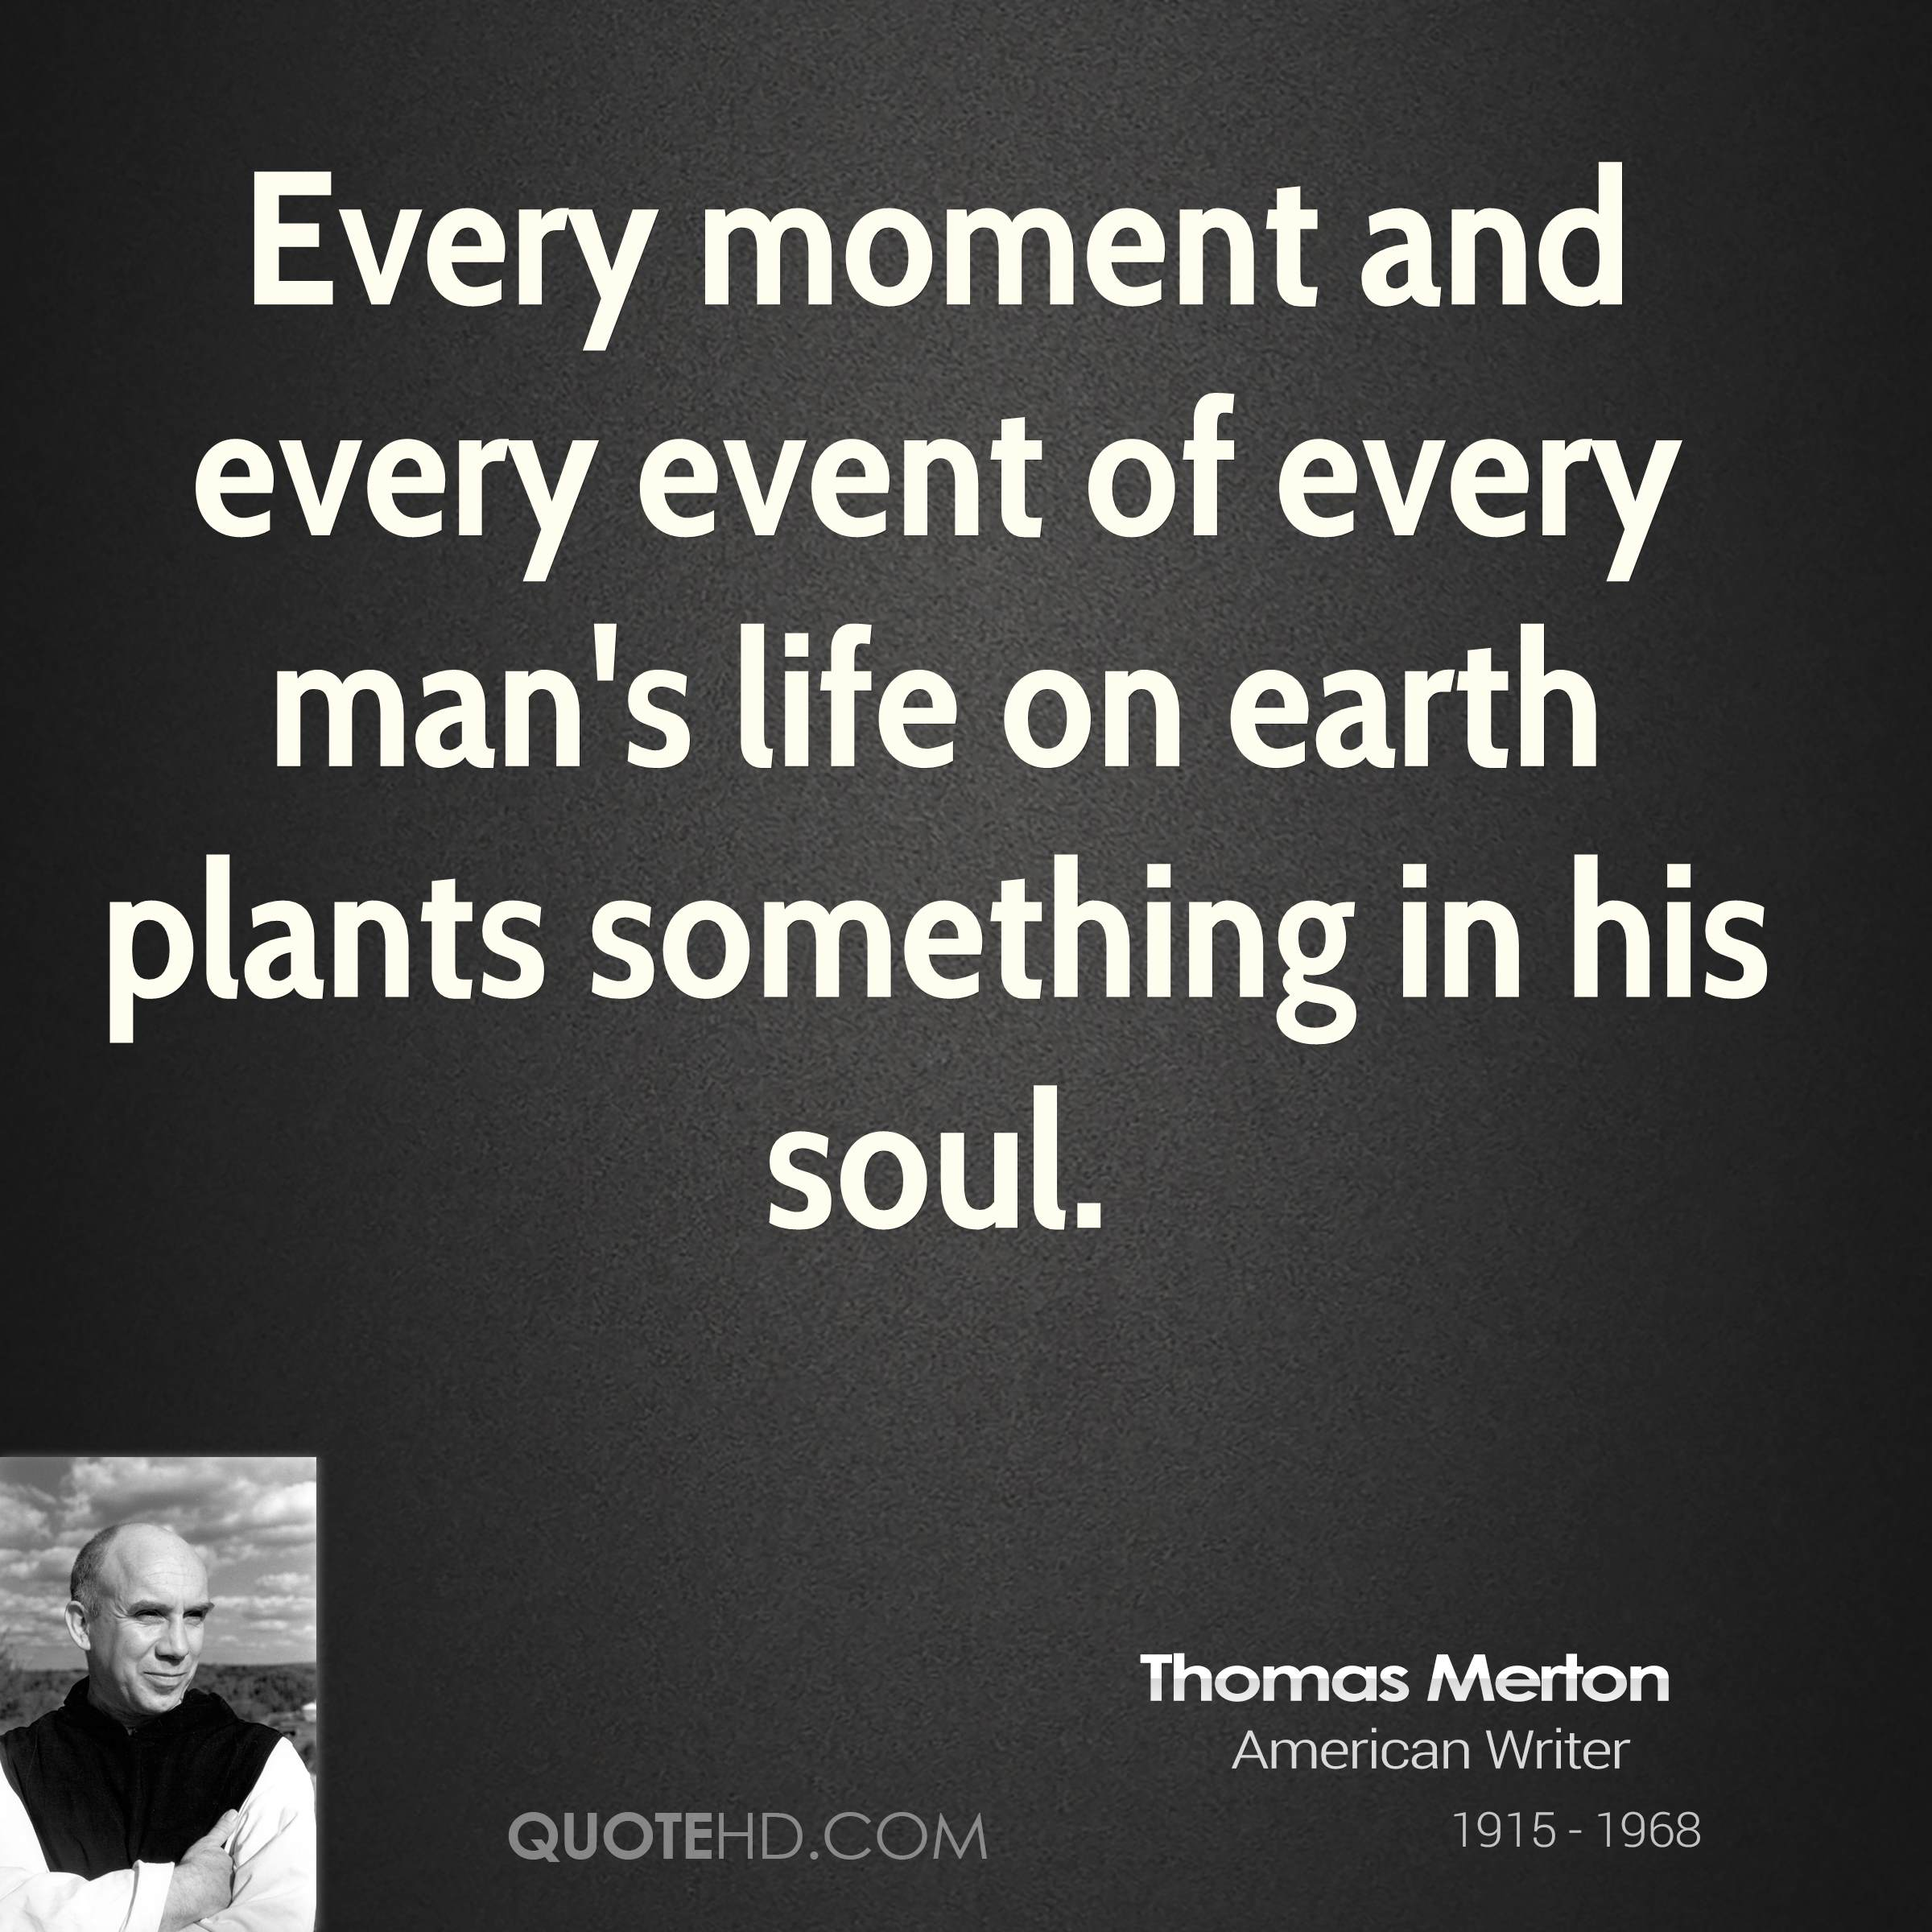 African American Inspirational Quotes About Life Thomas Merton Life Quotes  Quotehd